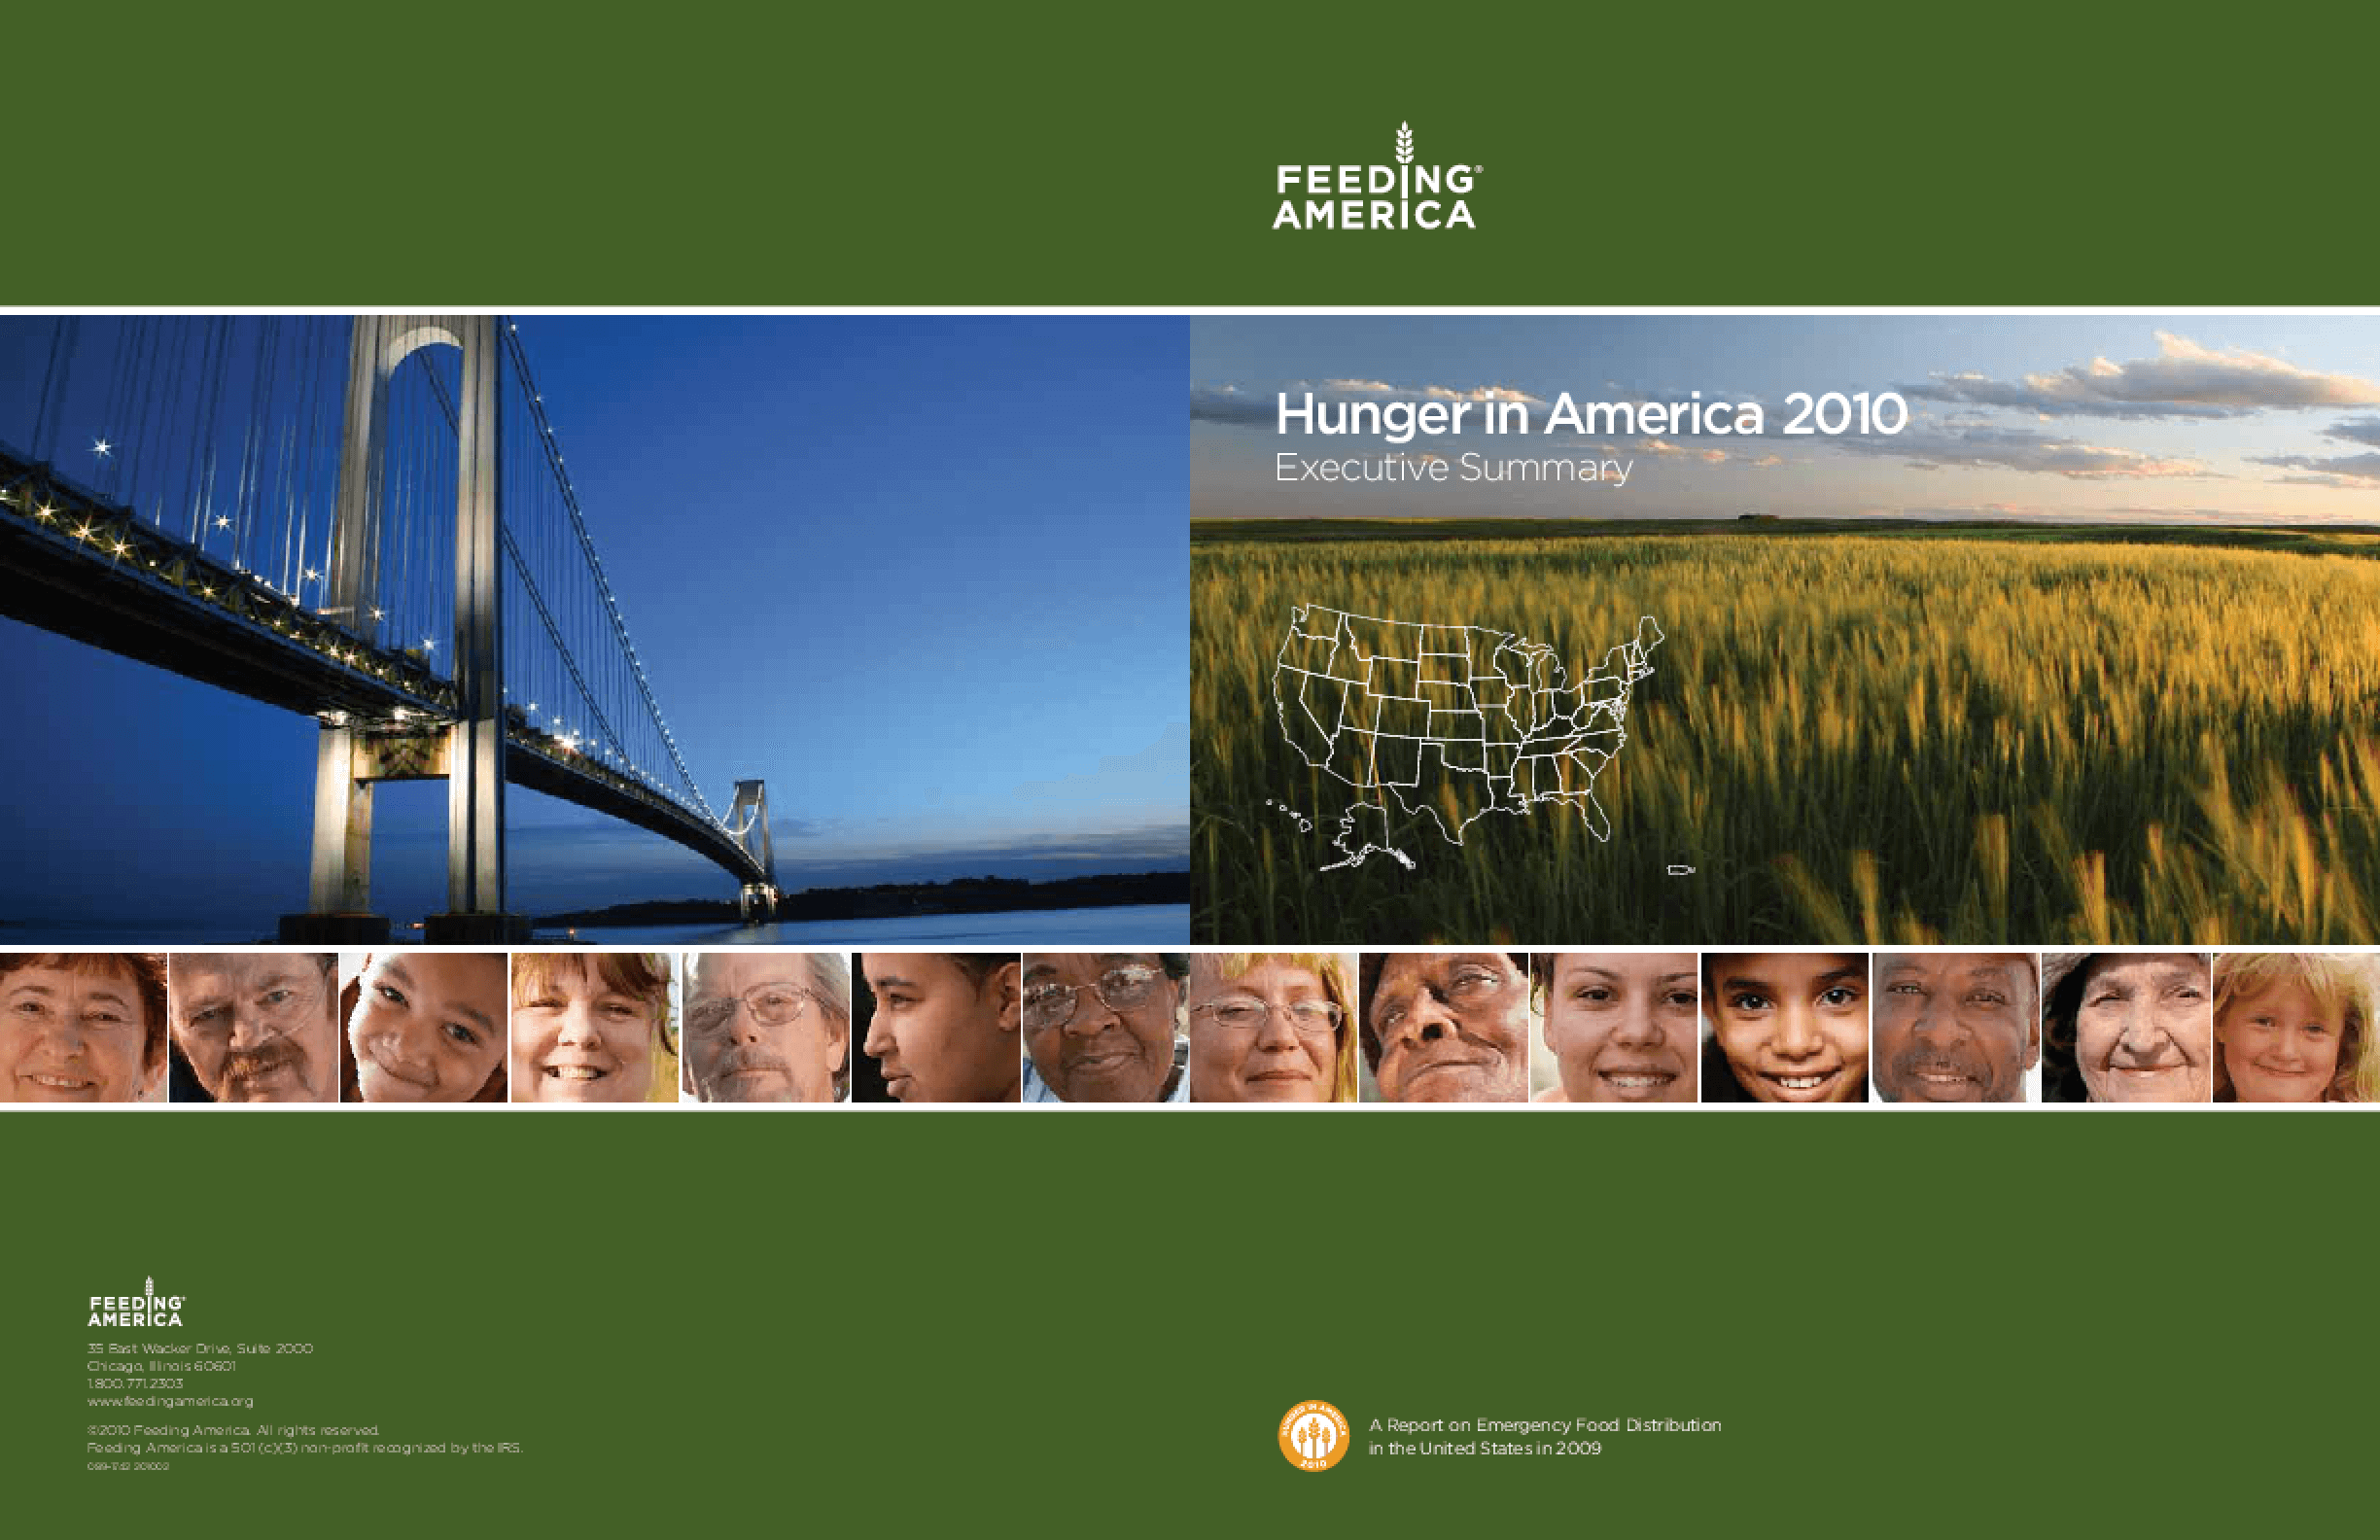 Hunger in America 2010 Executive Summary